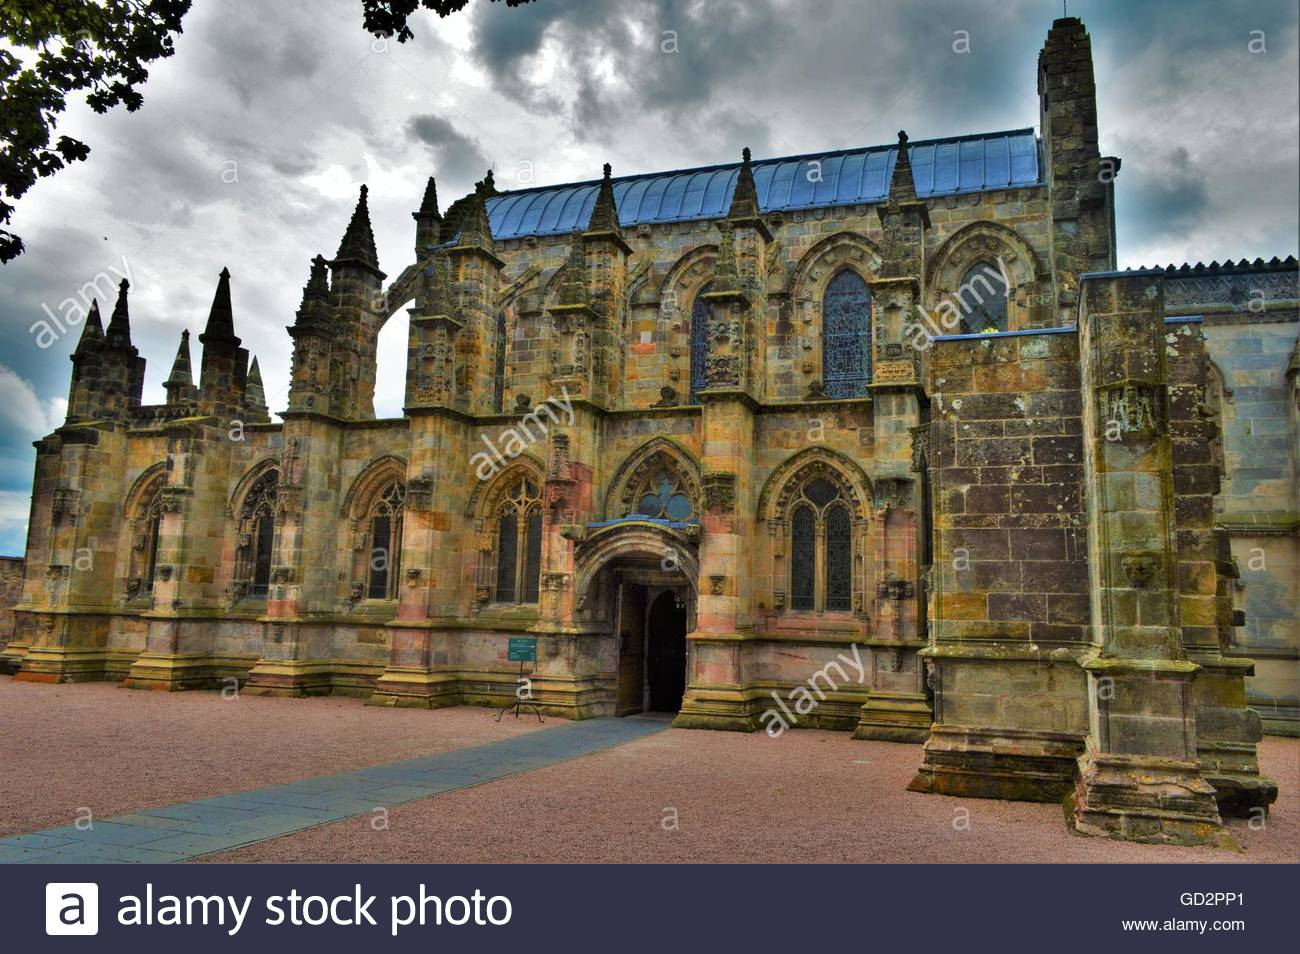 Rosslyn Chapel on a Cloudy Day - Stock Image